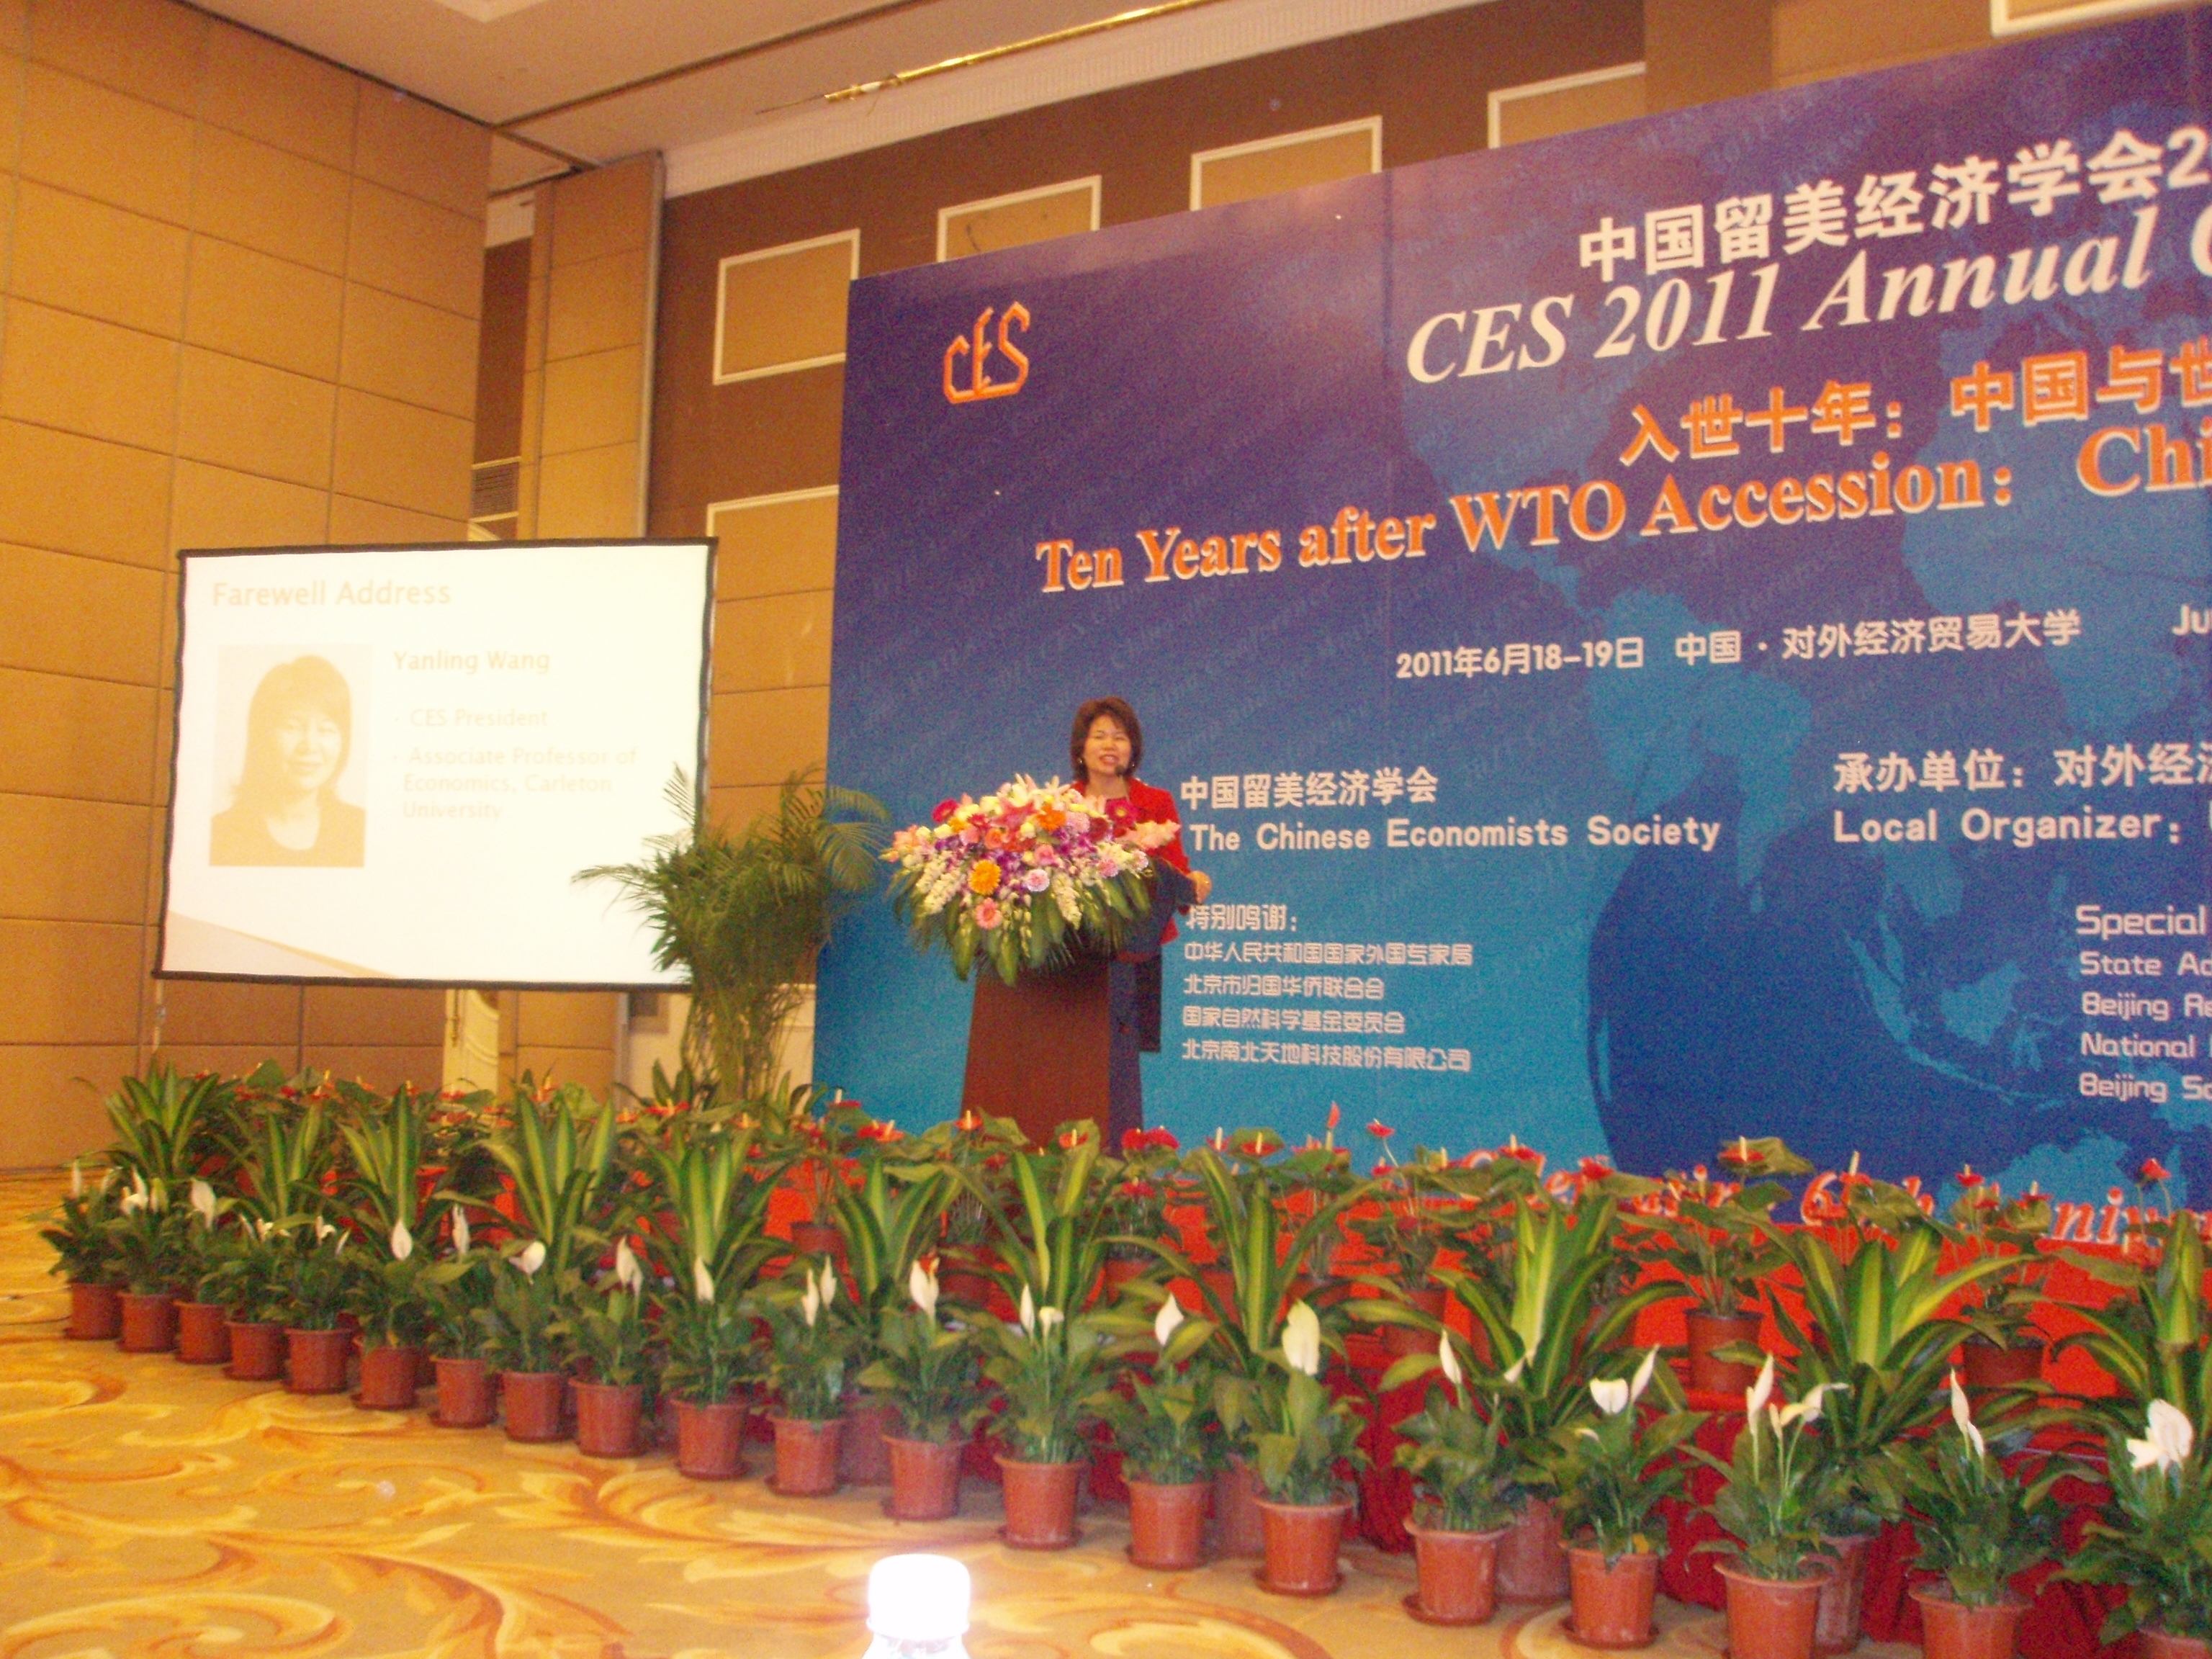 President Wang Yanling at Closing Ceremony